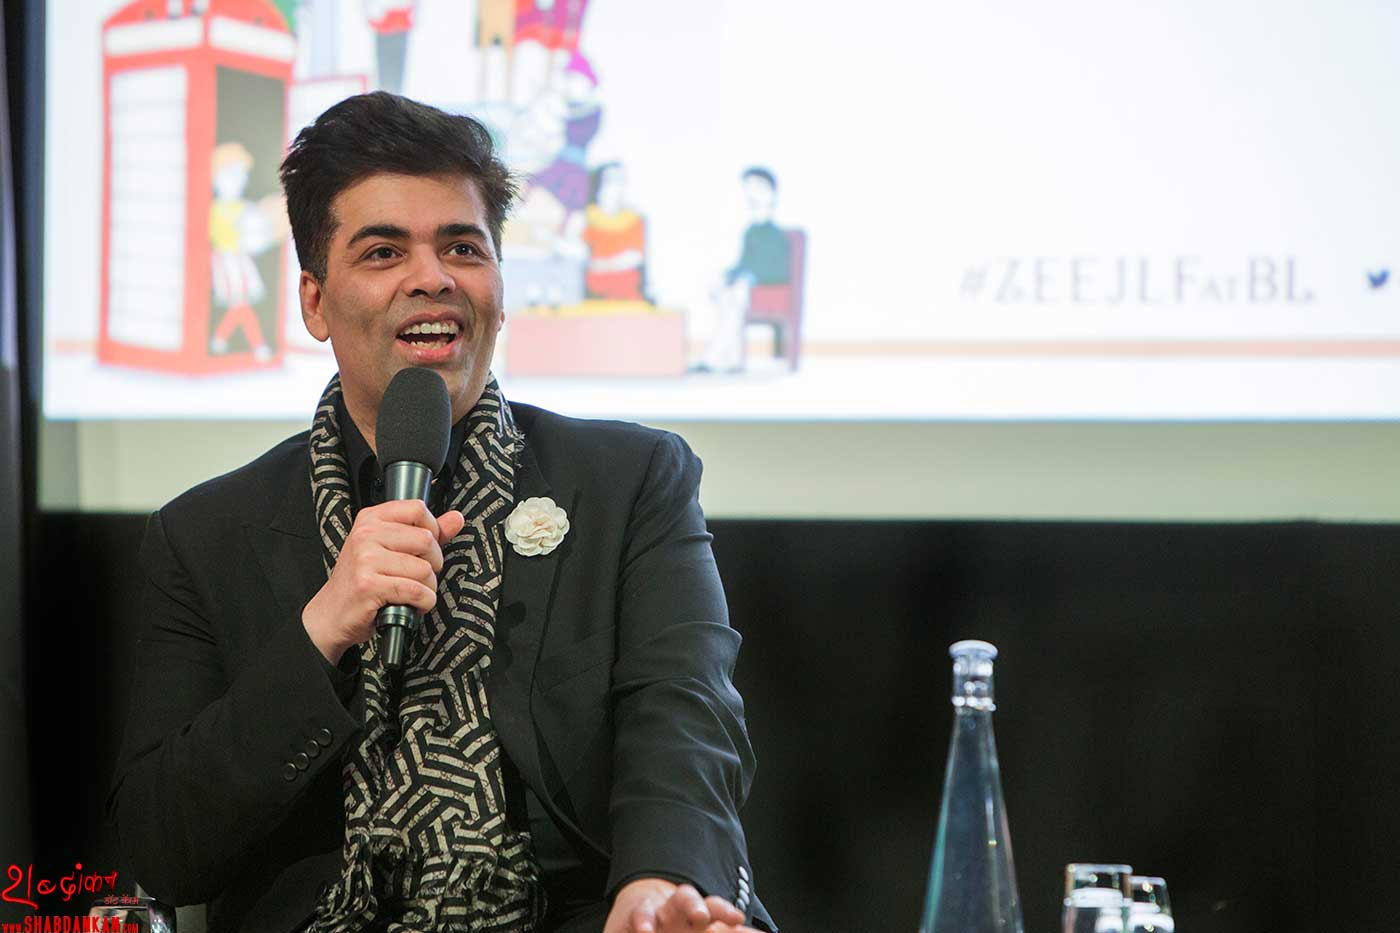 An-Unsuitable-Boy_Karan-Johar-in-conversation-with-Rachel-Dwyer_ZEE-JLF-at-British-Library_Photo-by-Stuart-Armitt